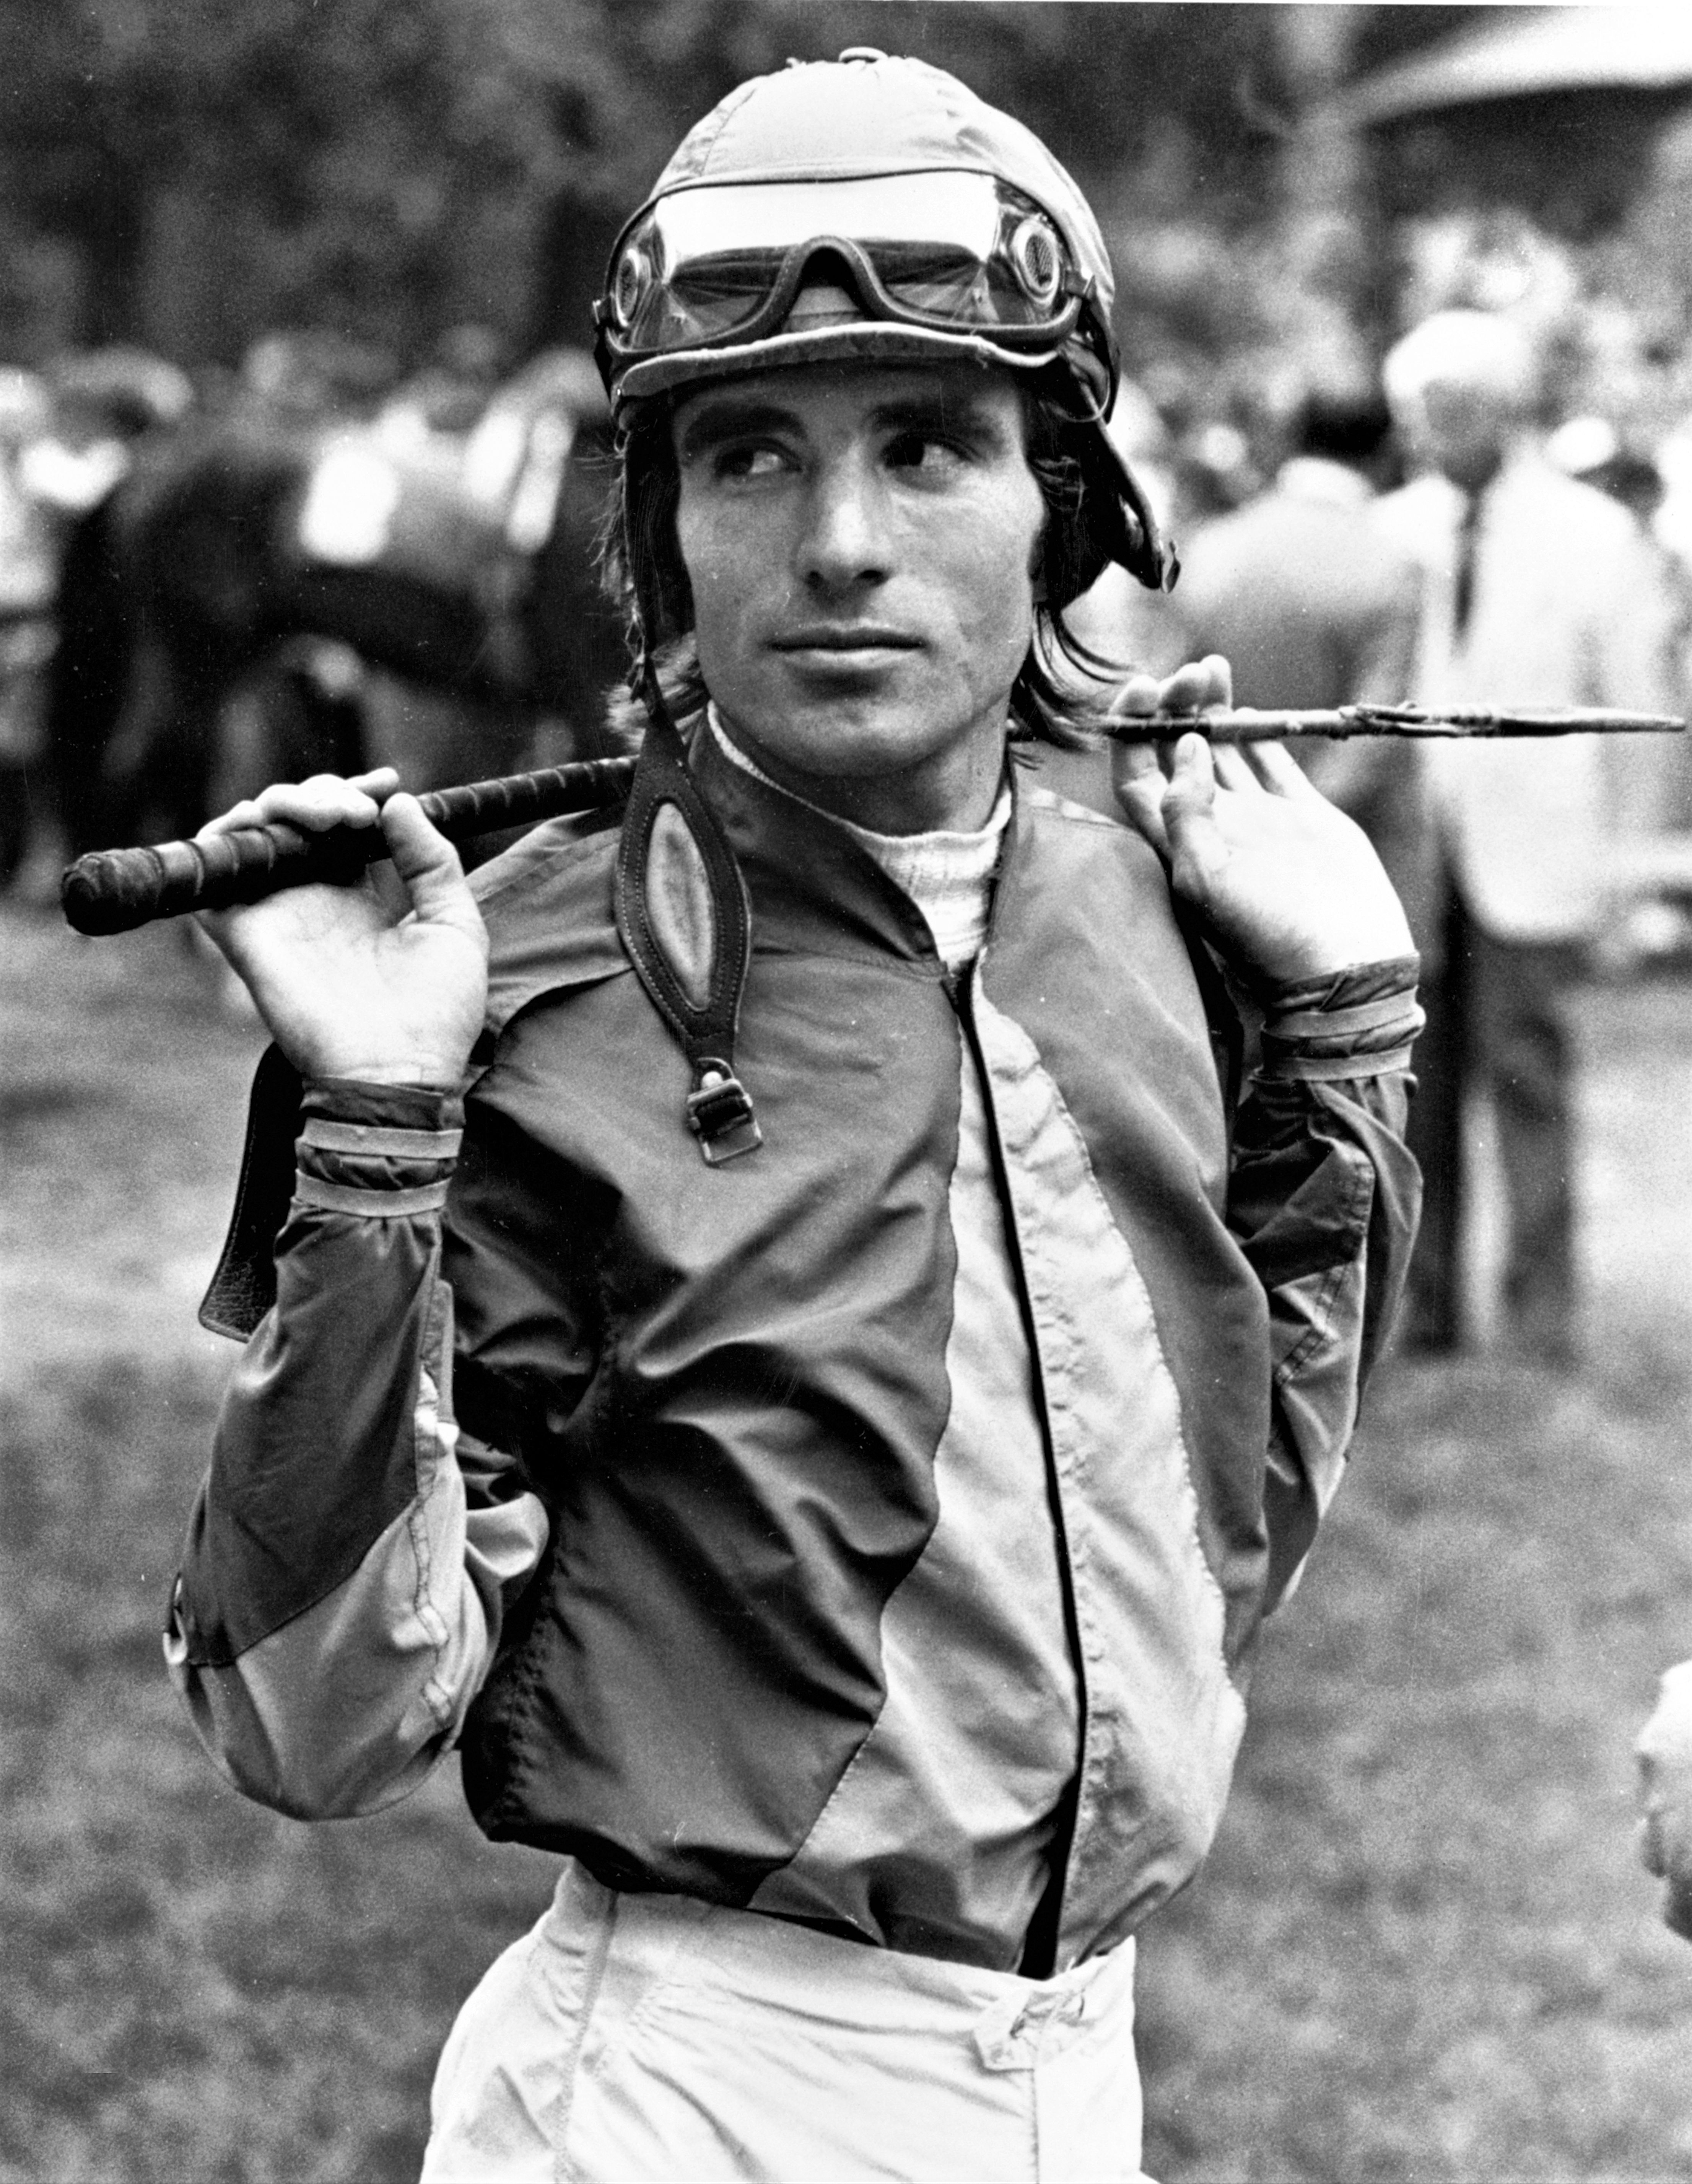 Darrel McHargue in the paddock, October 1985 (Keeneland Library Thoroughbred Times Collection)